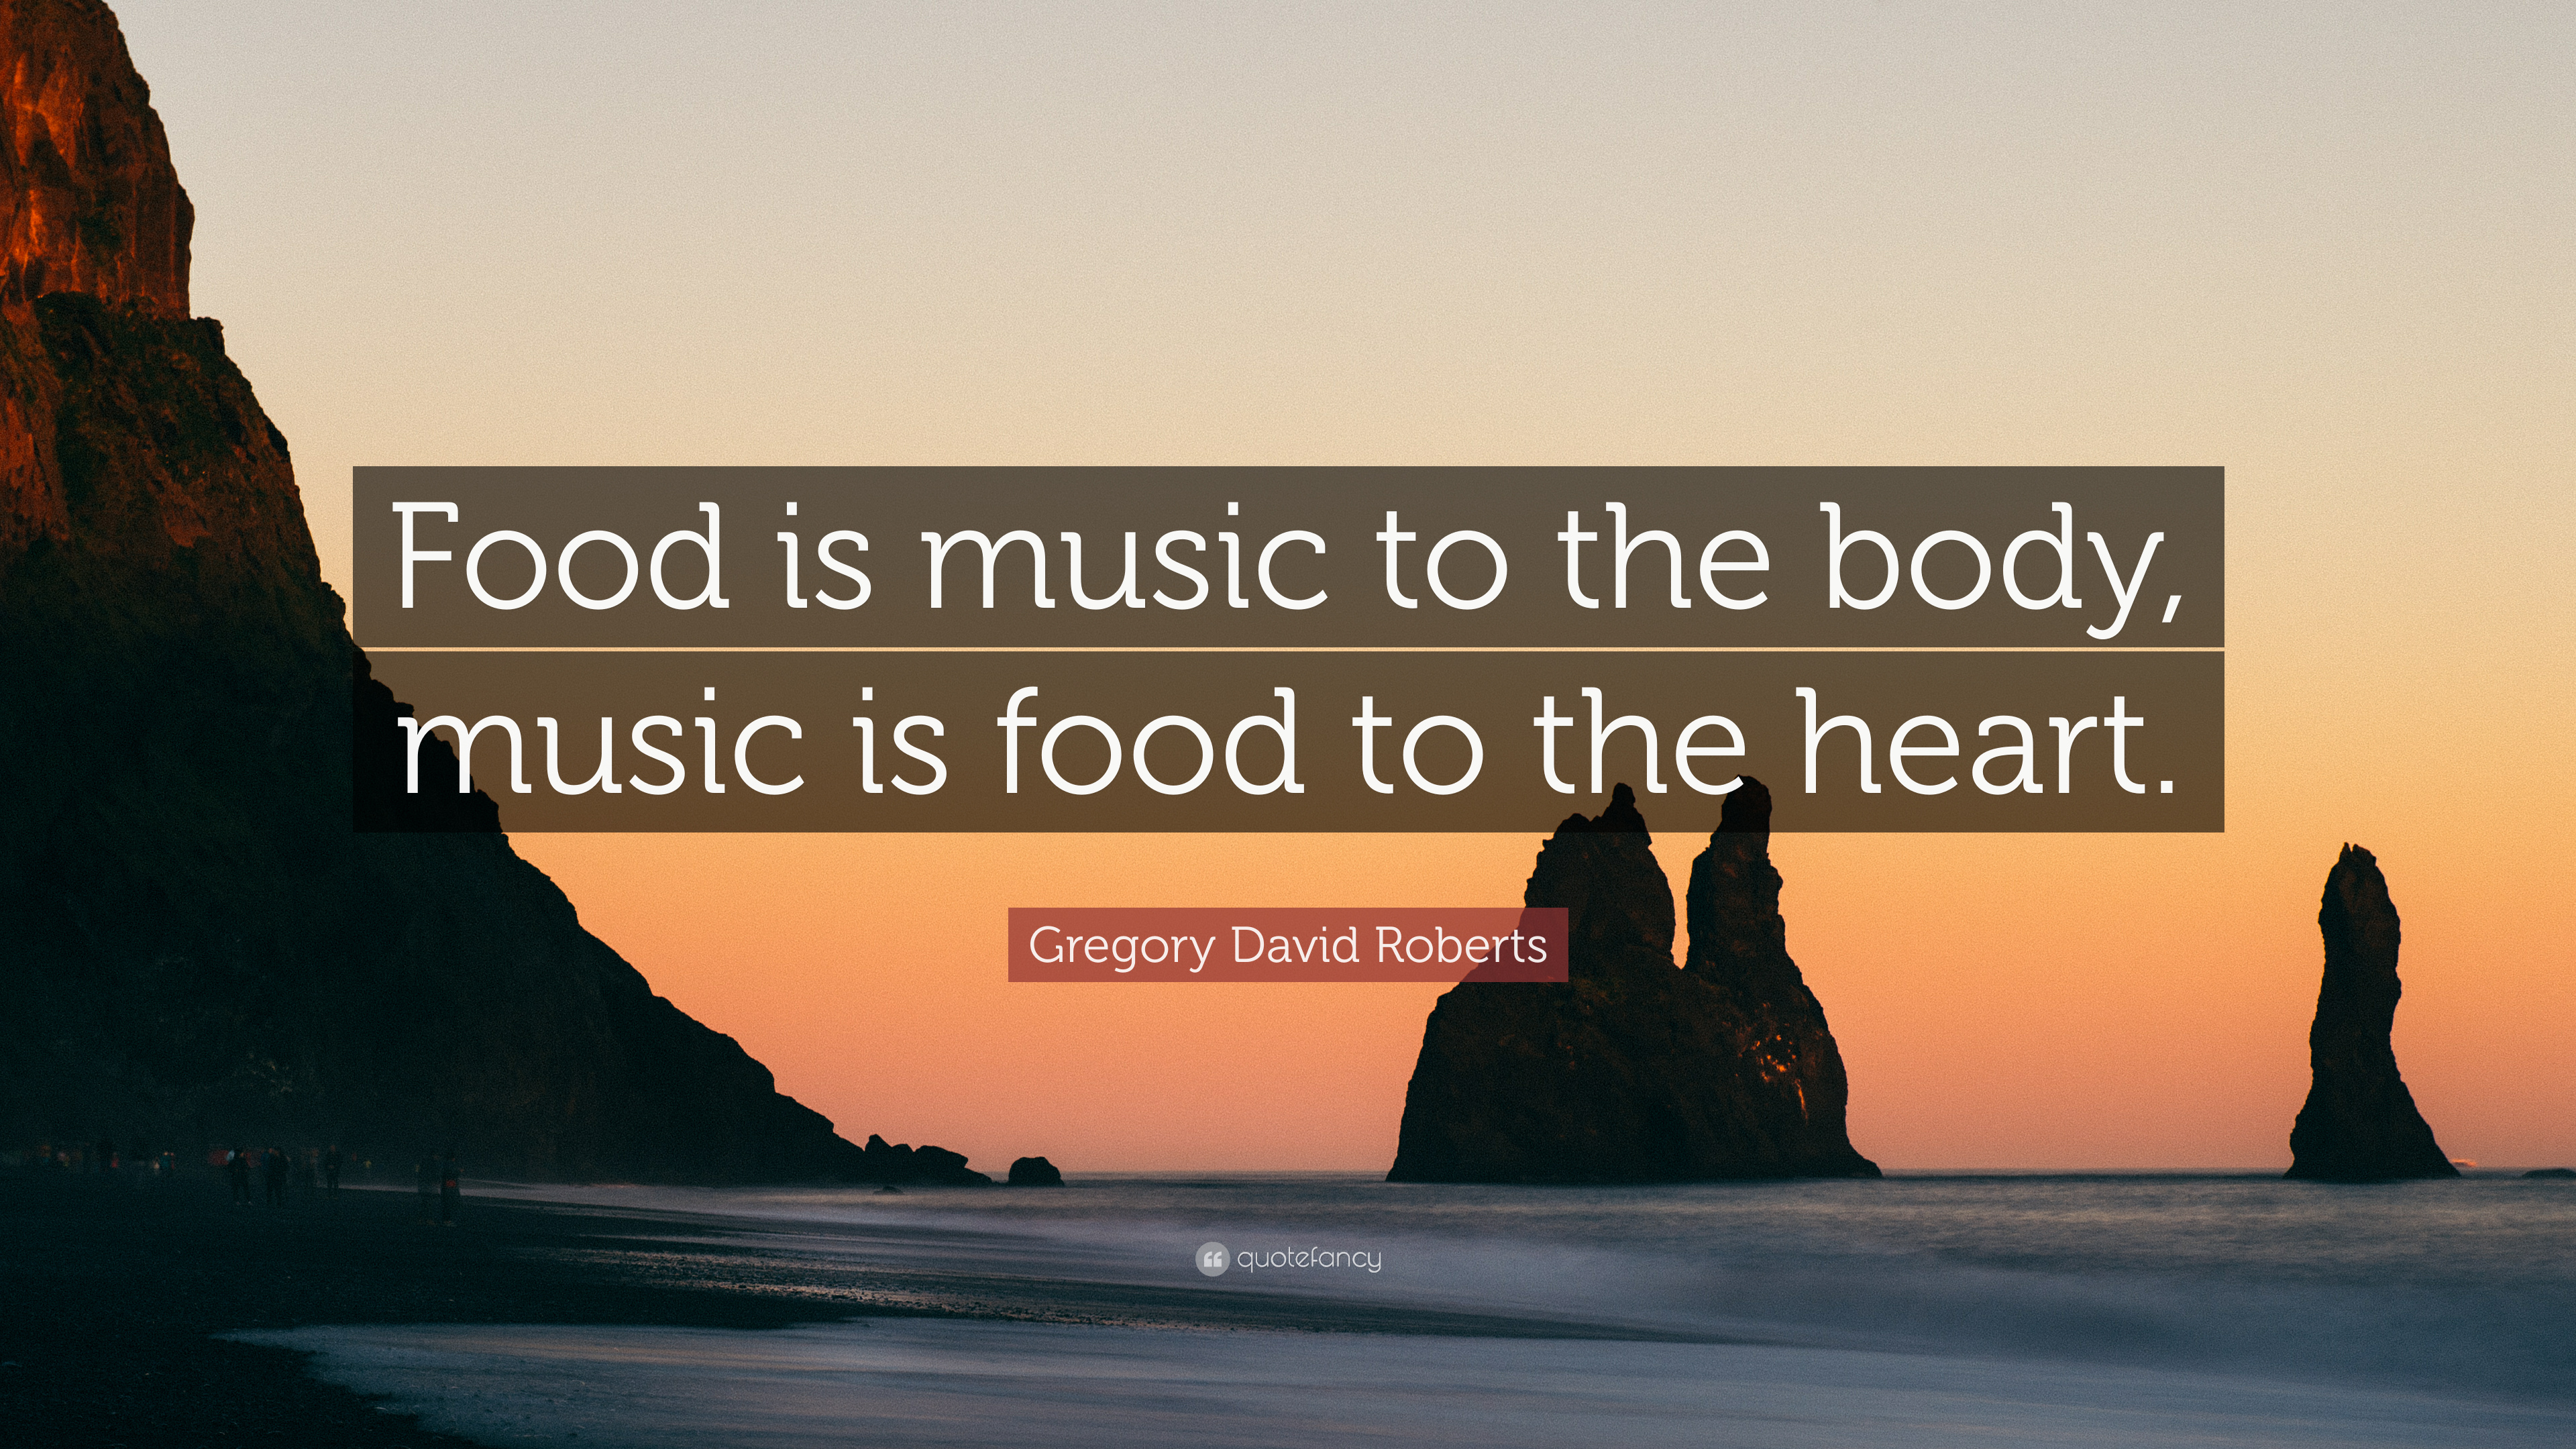 Cool Wallpaper Music Food - 2424247-Gregory-David-Roberts-Quote-Food-is-music-to-the-body-music-is  Best Photo Reference_365965.jpg